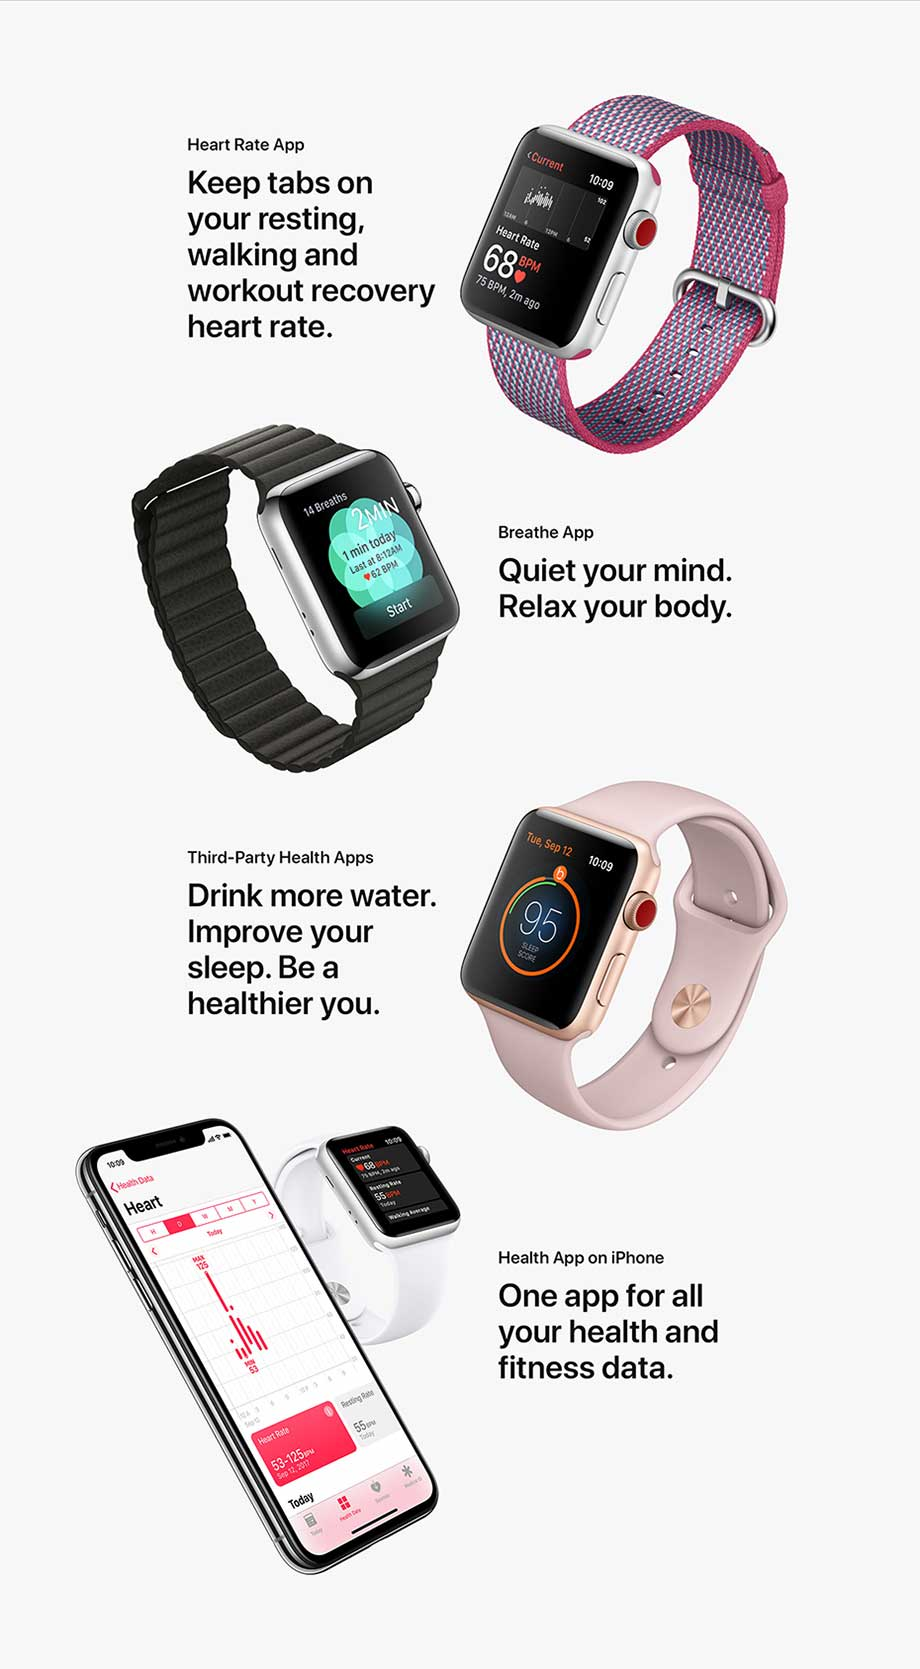 Heart Rate App, Breathe App, Third-Party Health Apps, Health App on iPhone